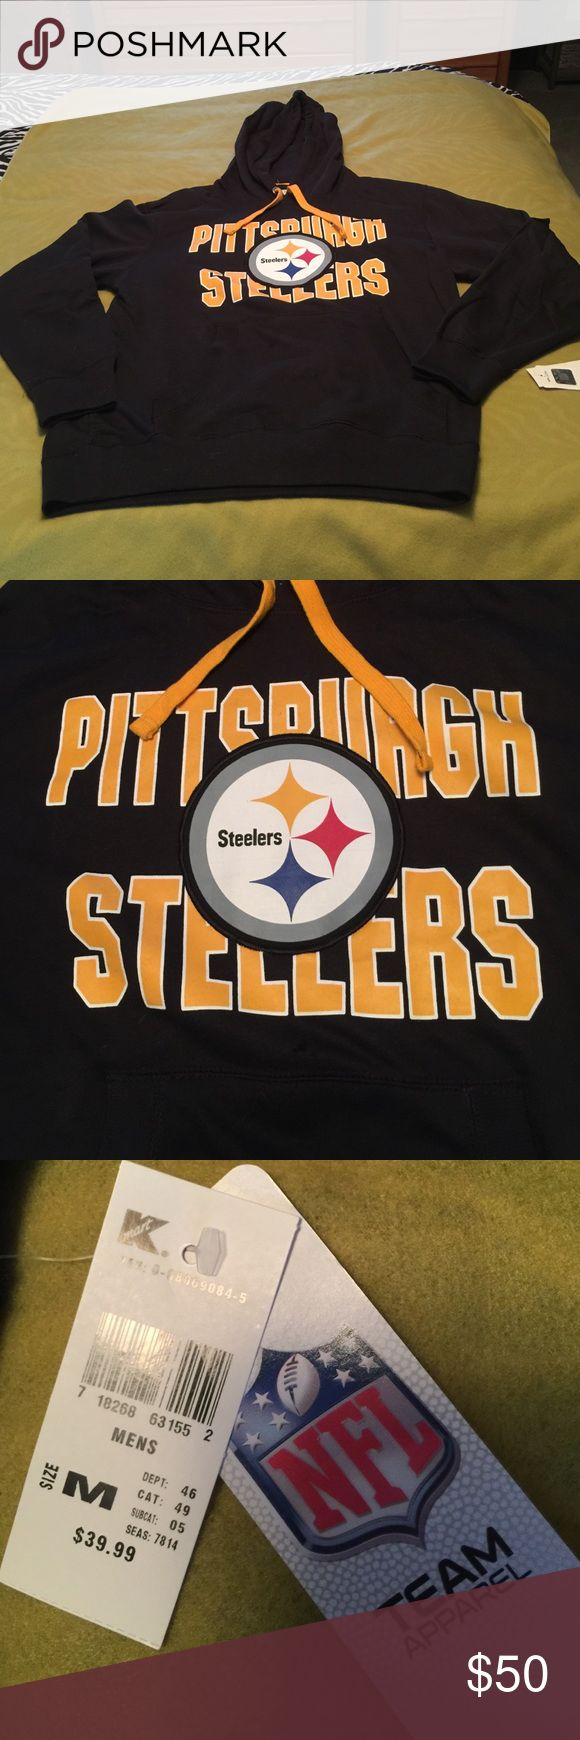 Men's Pittsburgh Steelers sweatshirt, size medium Men's Pittsburgh Steelers sweatshirt, size medium by NFL Team Apparel.  Black, gold/white Steelers logo & graphics on front, back is plain.  Hood w/gold drawstring tie, front pouch.  Pit to pit is 22, waist is 22, top to bottom is 27, sleeve is 21.5.  Officially licensed by the NFL. NWT. NFL Team Apparel Pgh Steelers Tops Sweatshirts & Hoodies